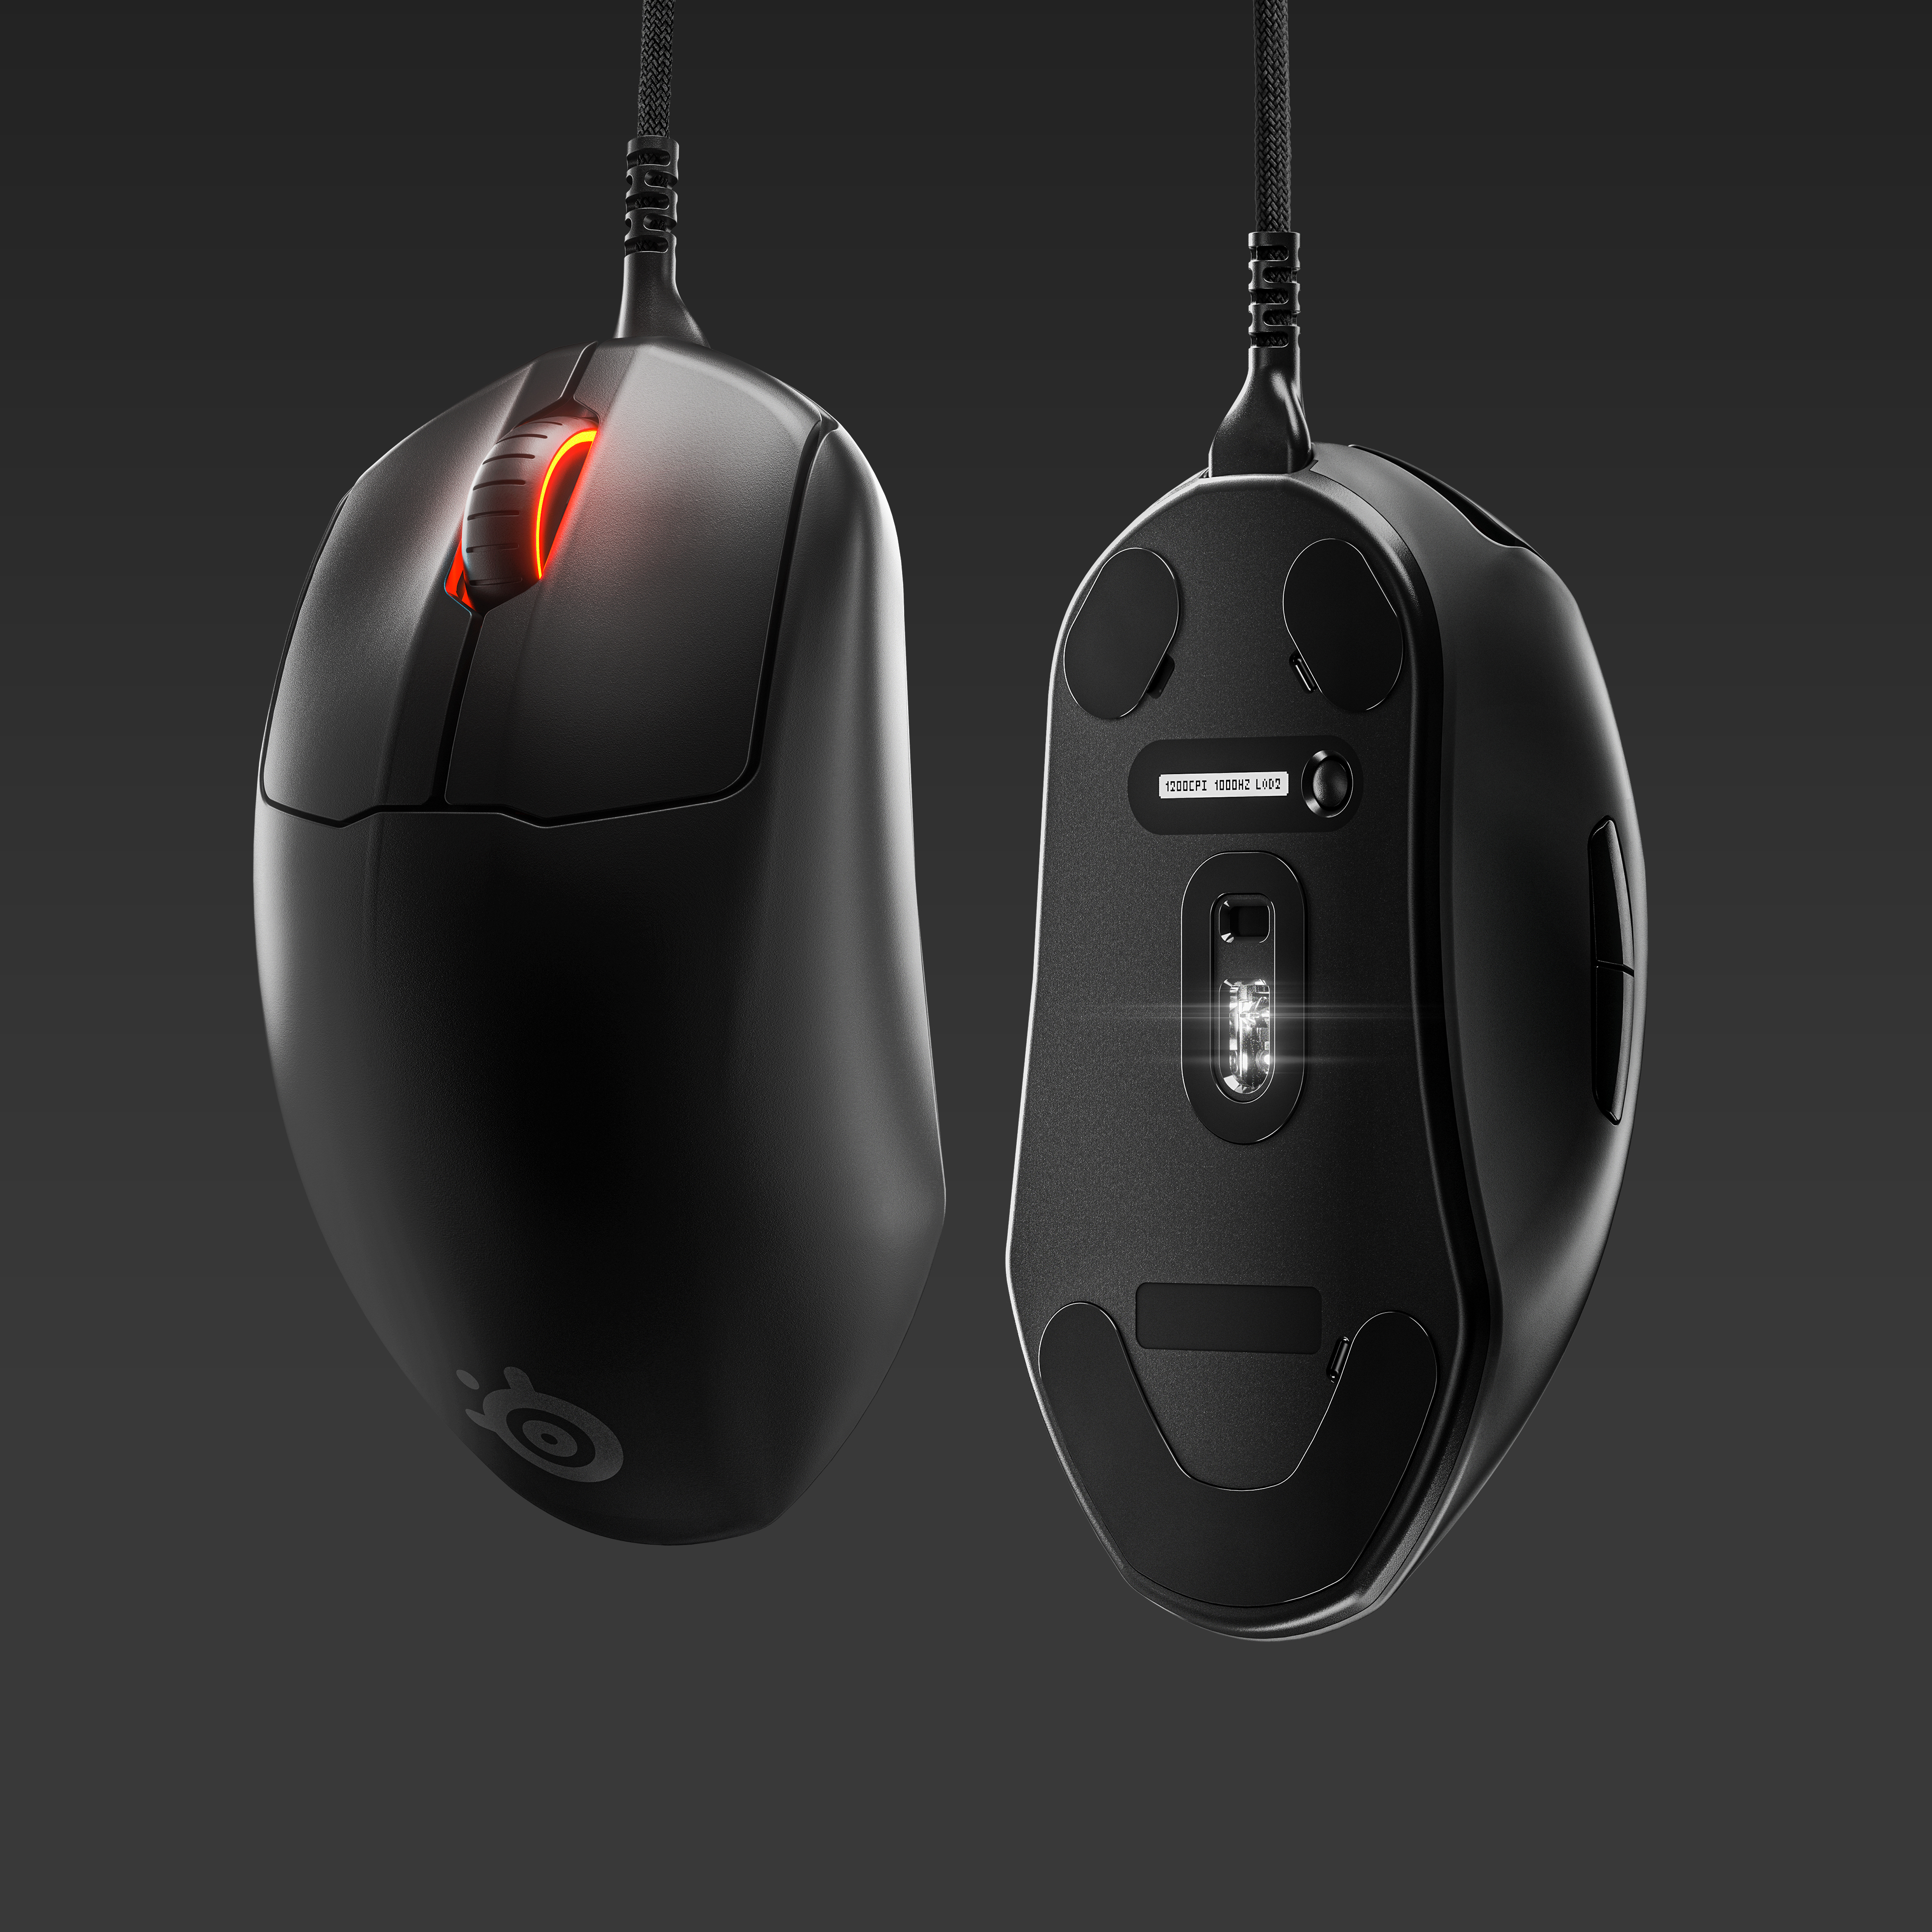 The Prime+ gaming mouse.